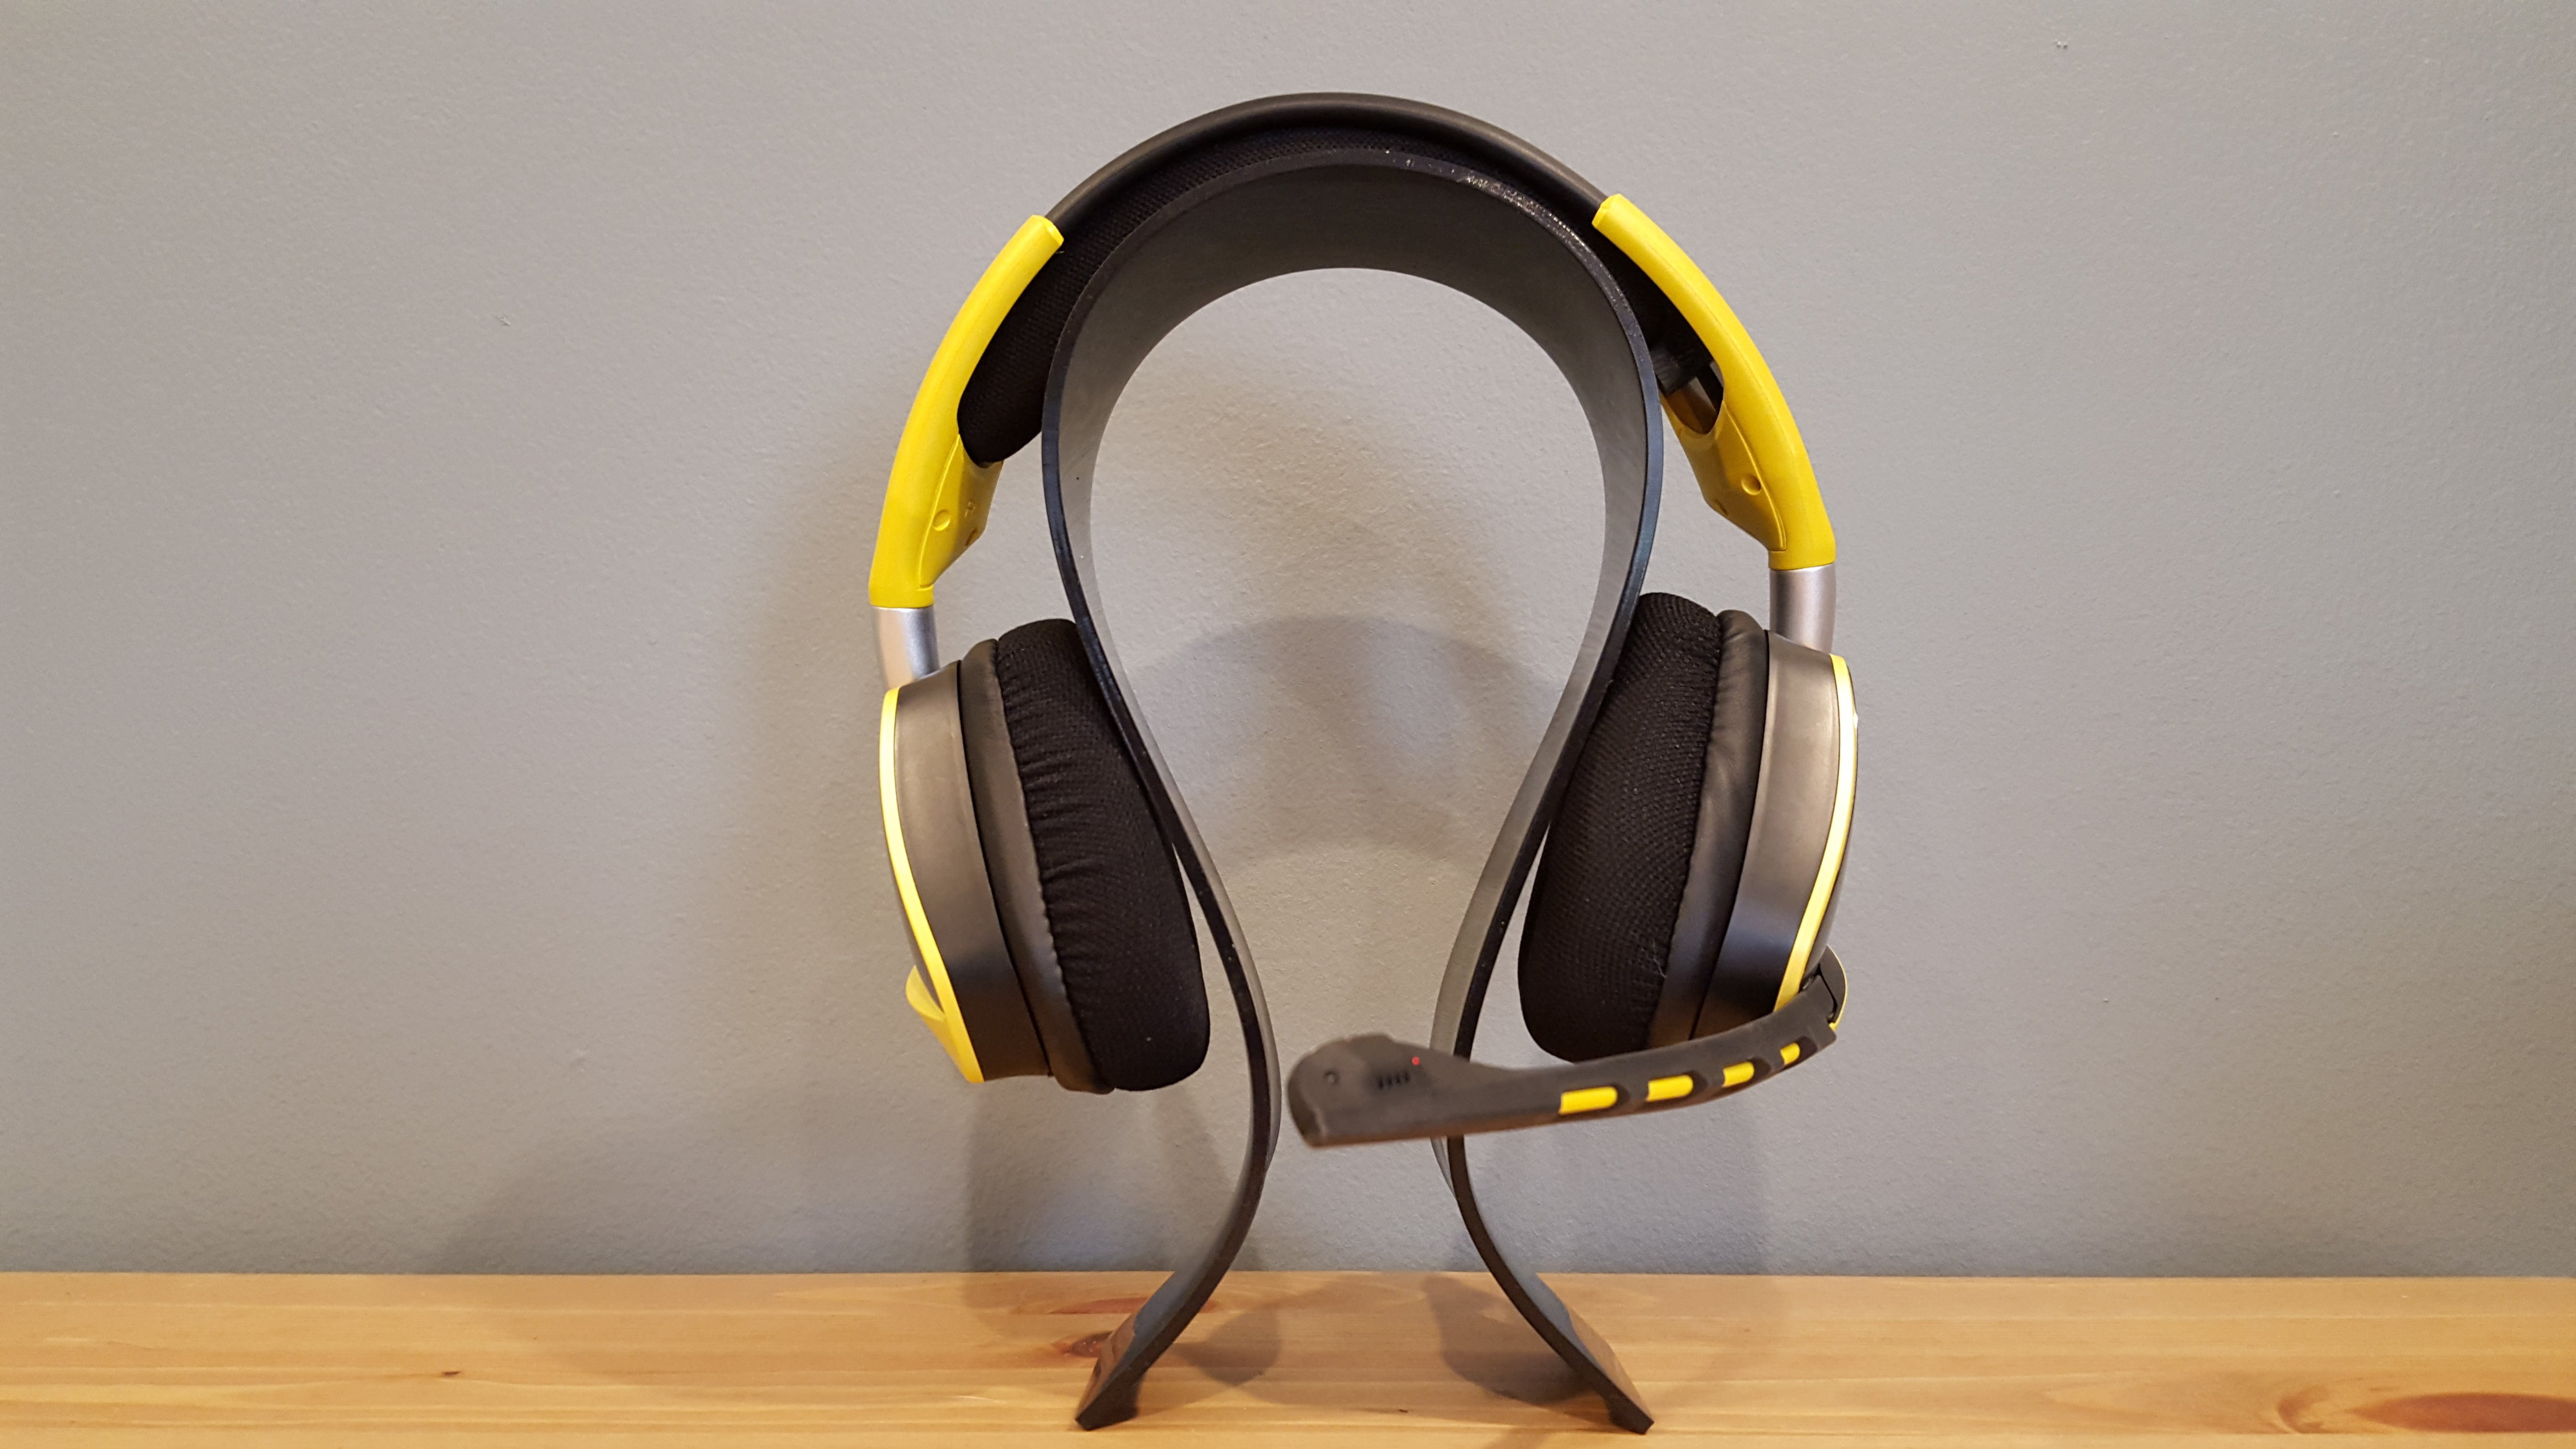 Corsair Void Wireless review: This headset is your best bet